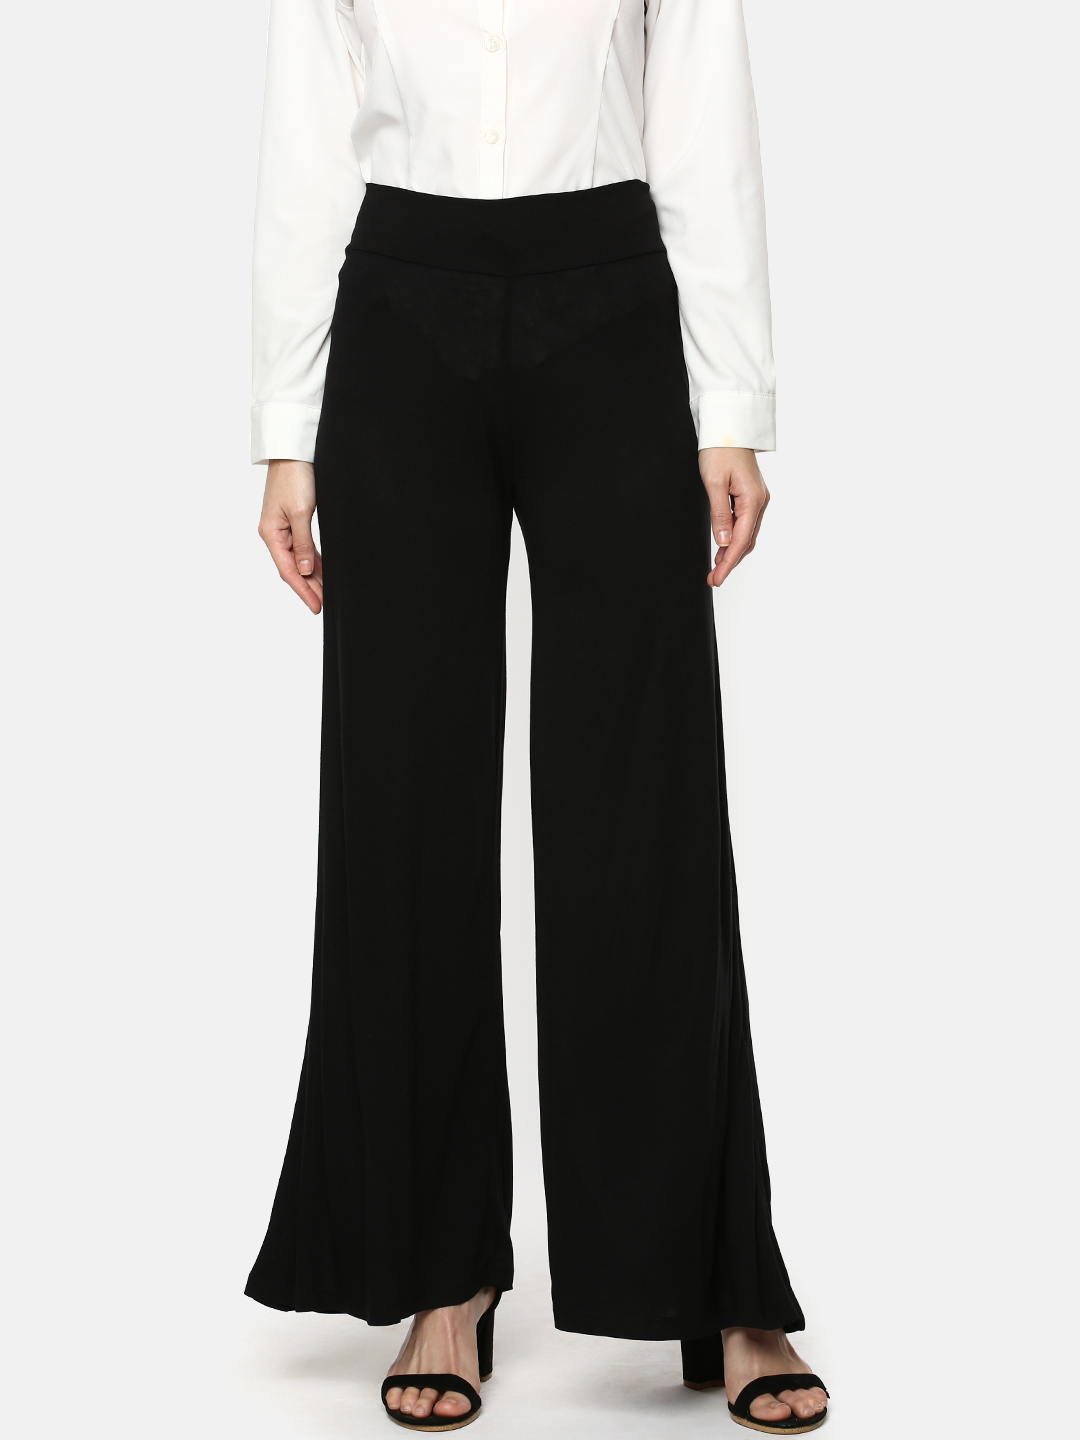 Y CAN F | YCANF Women's Casual Black Palazzos